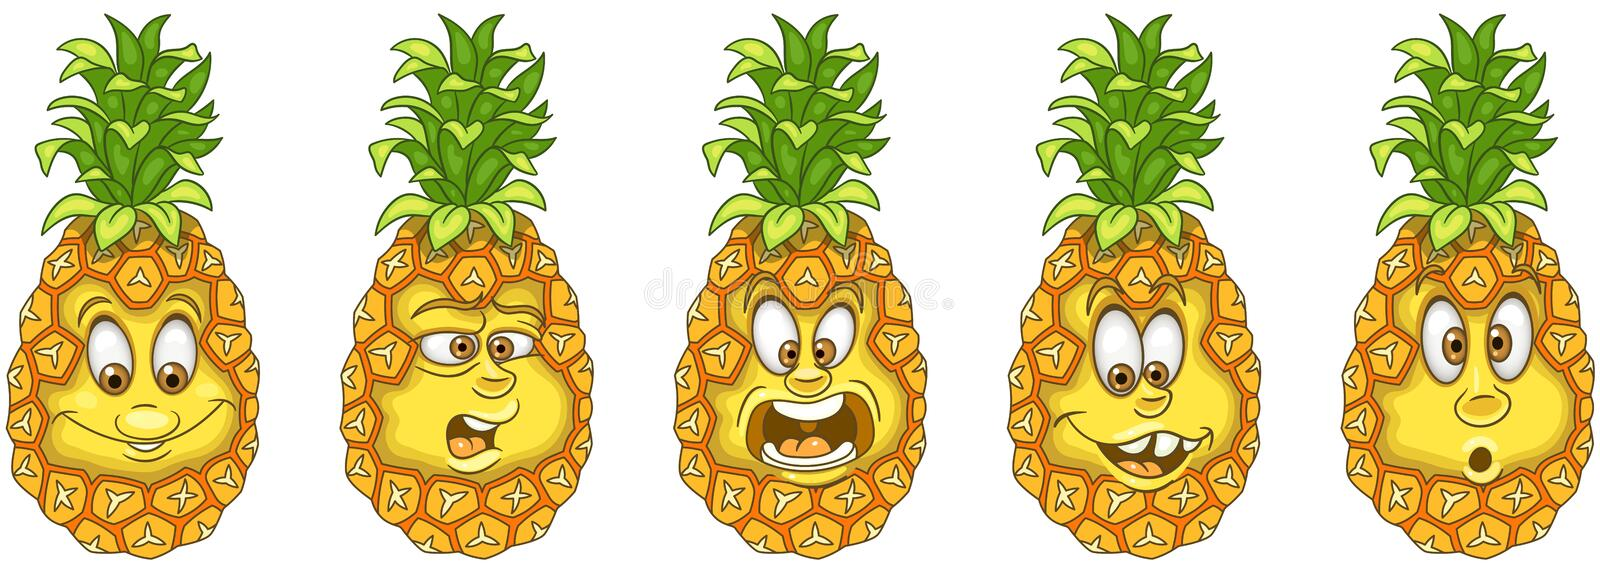 Pineapple. Fruit Food concept stock photos